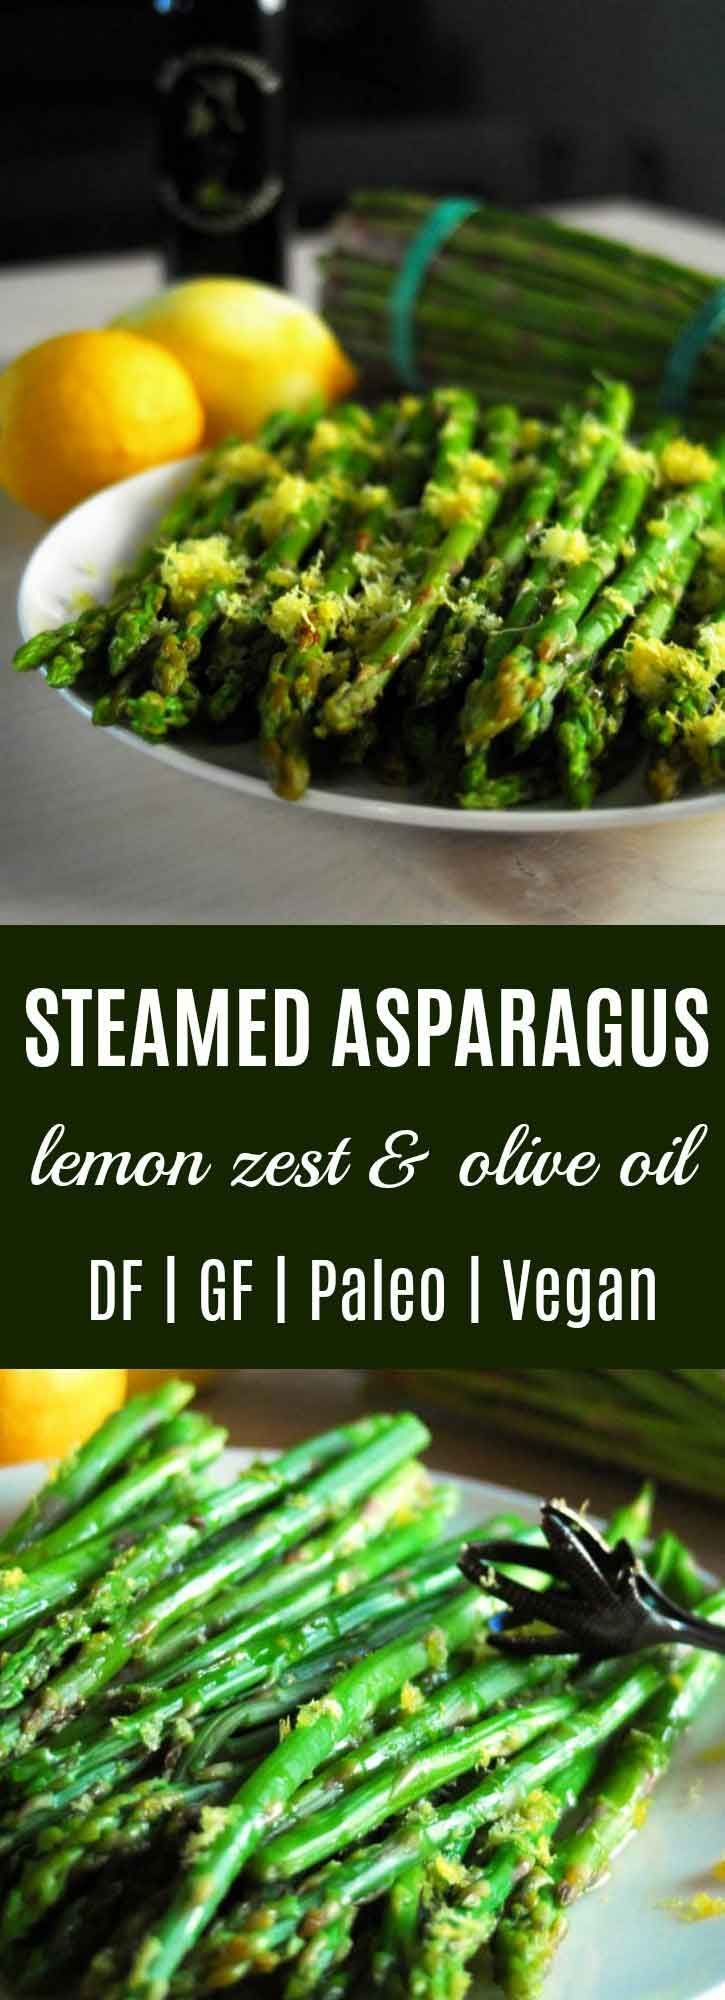 Steamed Asparagus with Lemon Zest & Olive Oil {Easy} | This Steamed Asparagus recipe is easy to prepare and full of flavor. Lemon zest & olive oil finish this quick nutrient dense side dish. | thenourishedfamily.com